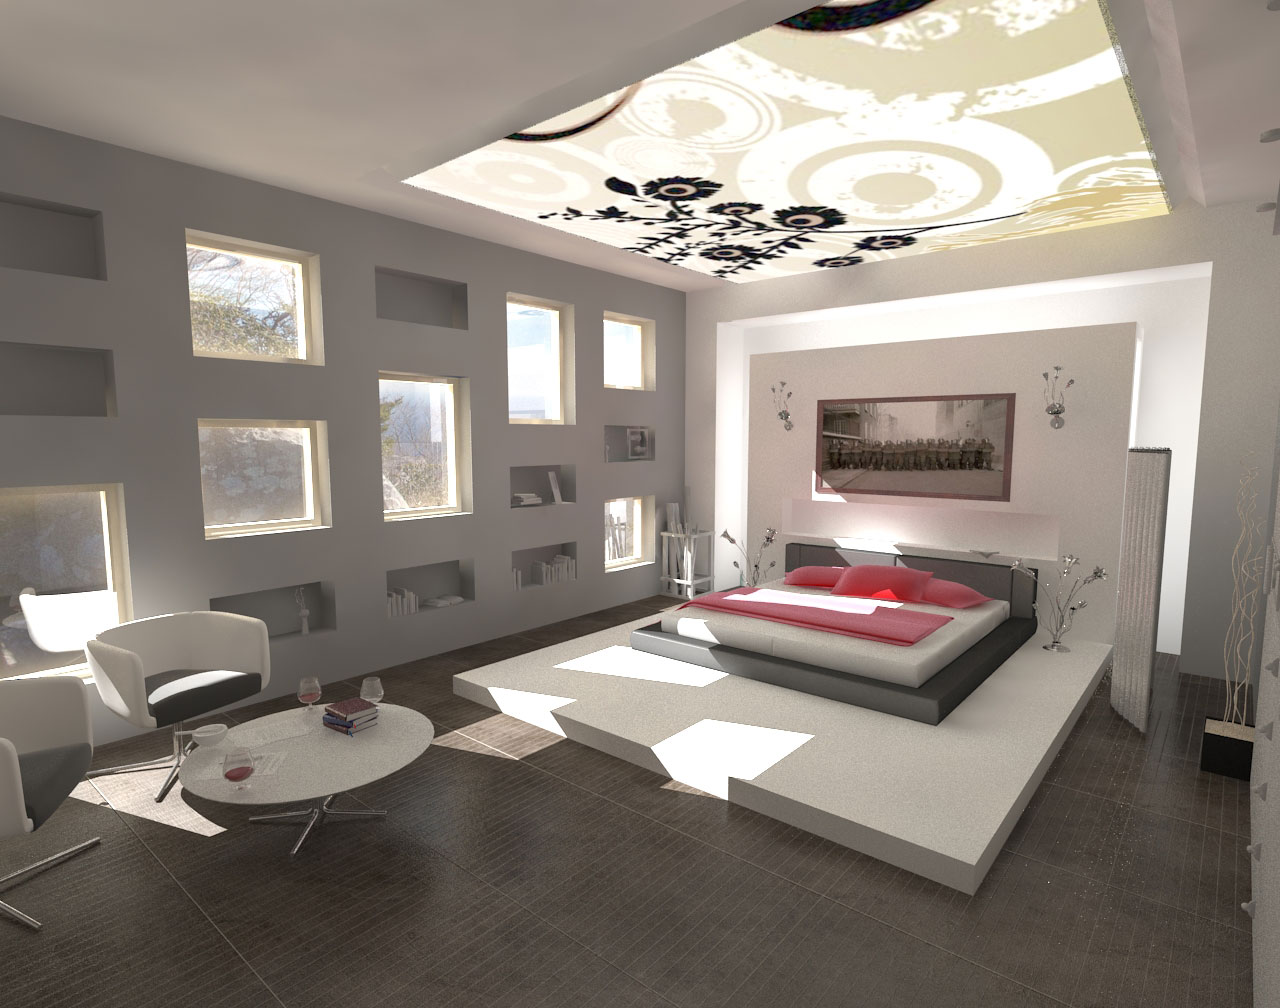 Modern bedroom design ideas photograph decorations minima for Contemporary interior designer